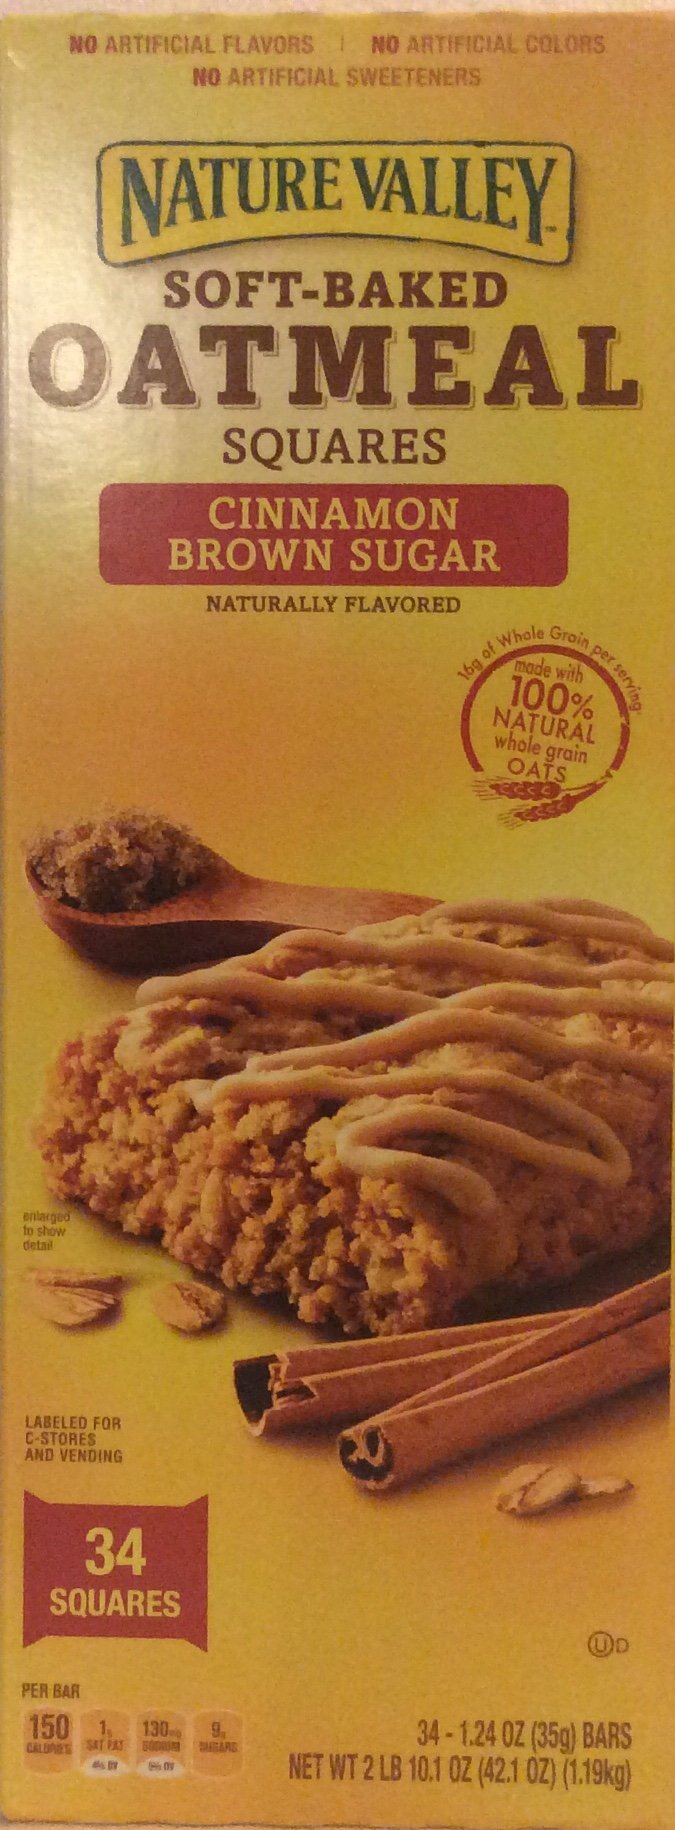 Nature Valley Soft-Baked Oatmeal Squares, Cinnamon Brown Sugar 34ct 1.24oz Each